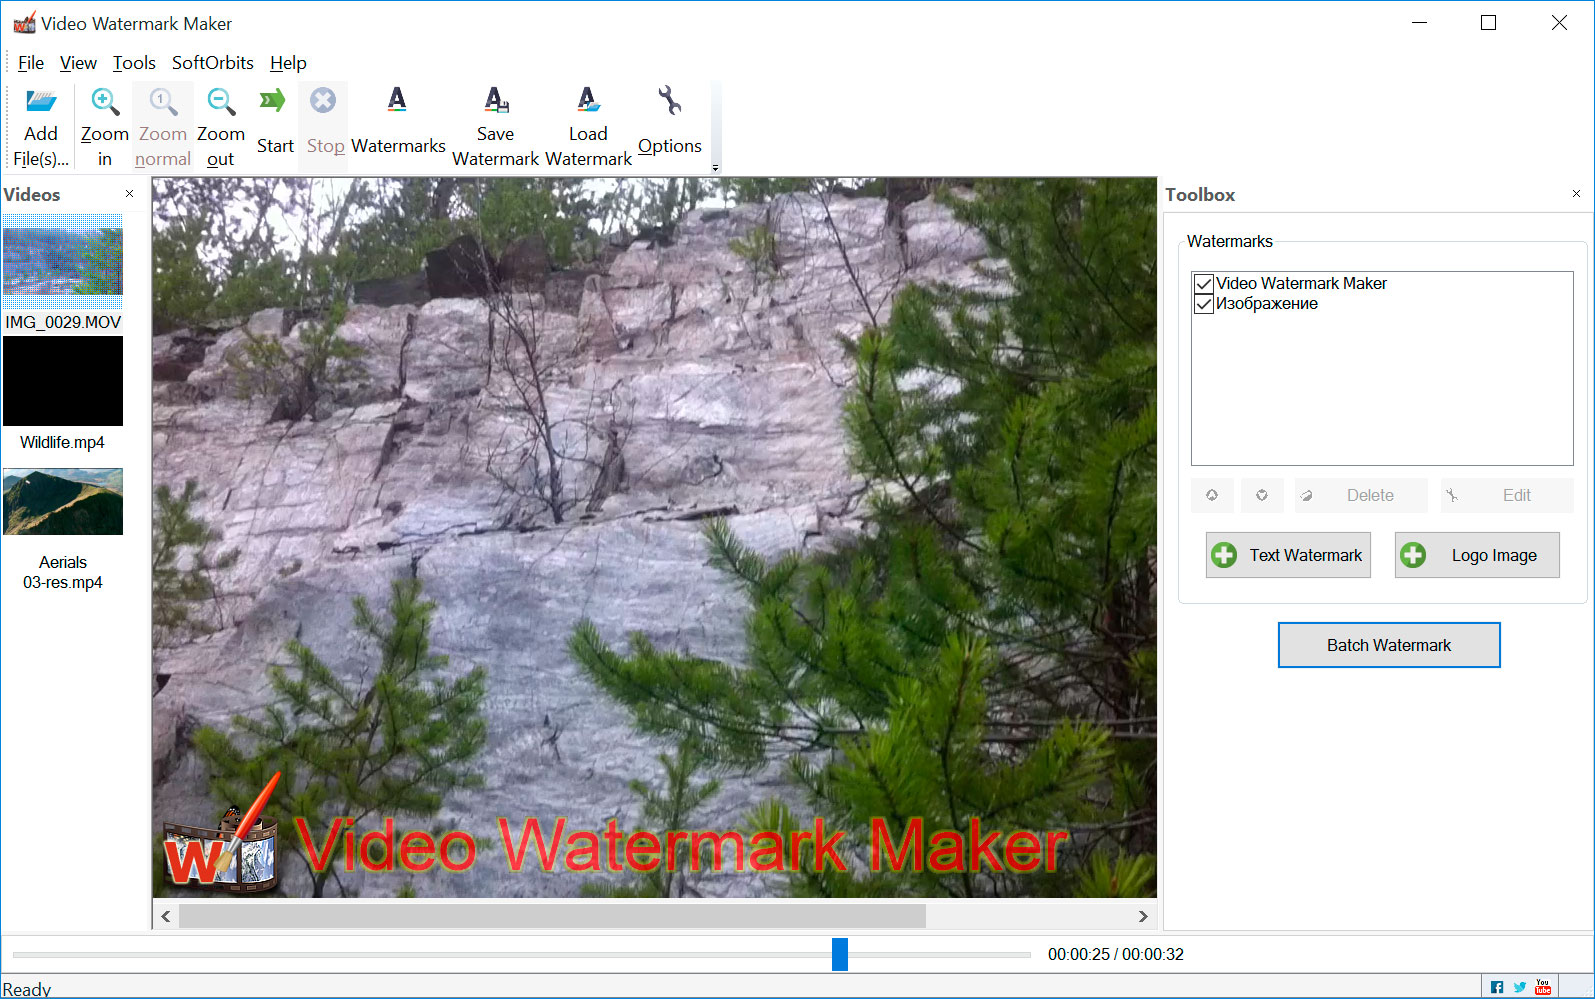 Video Watermark Maker Screenshots